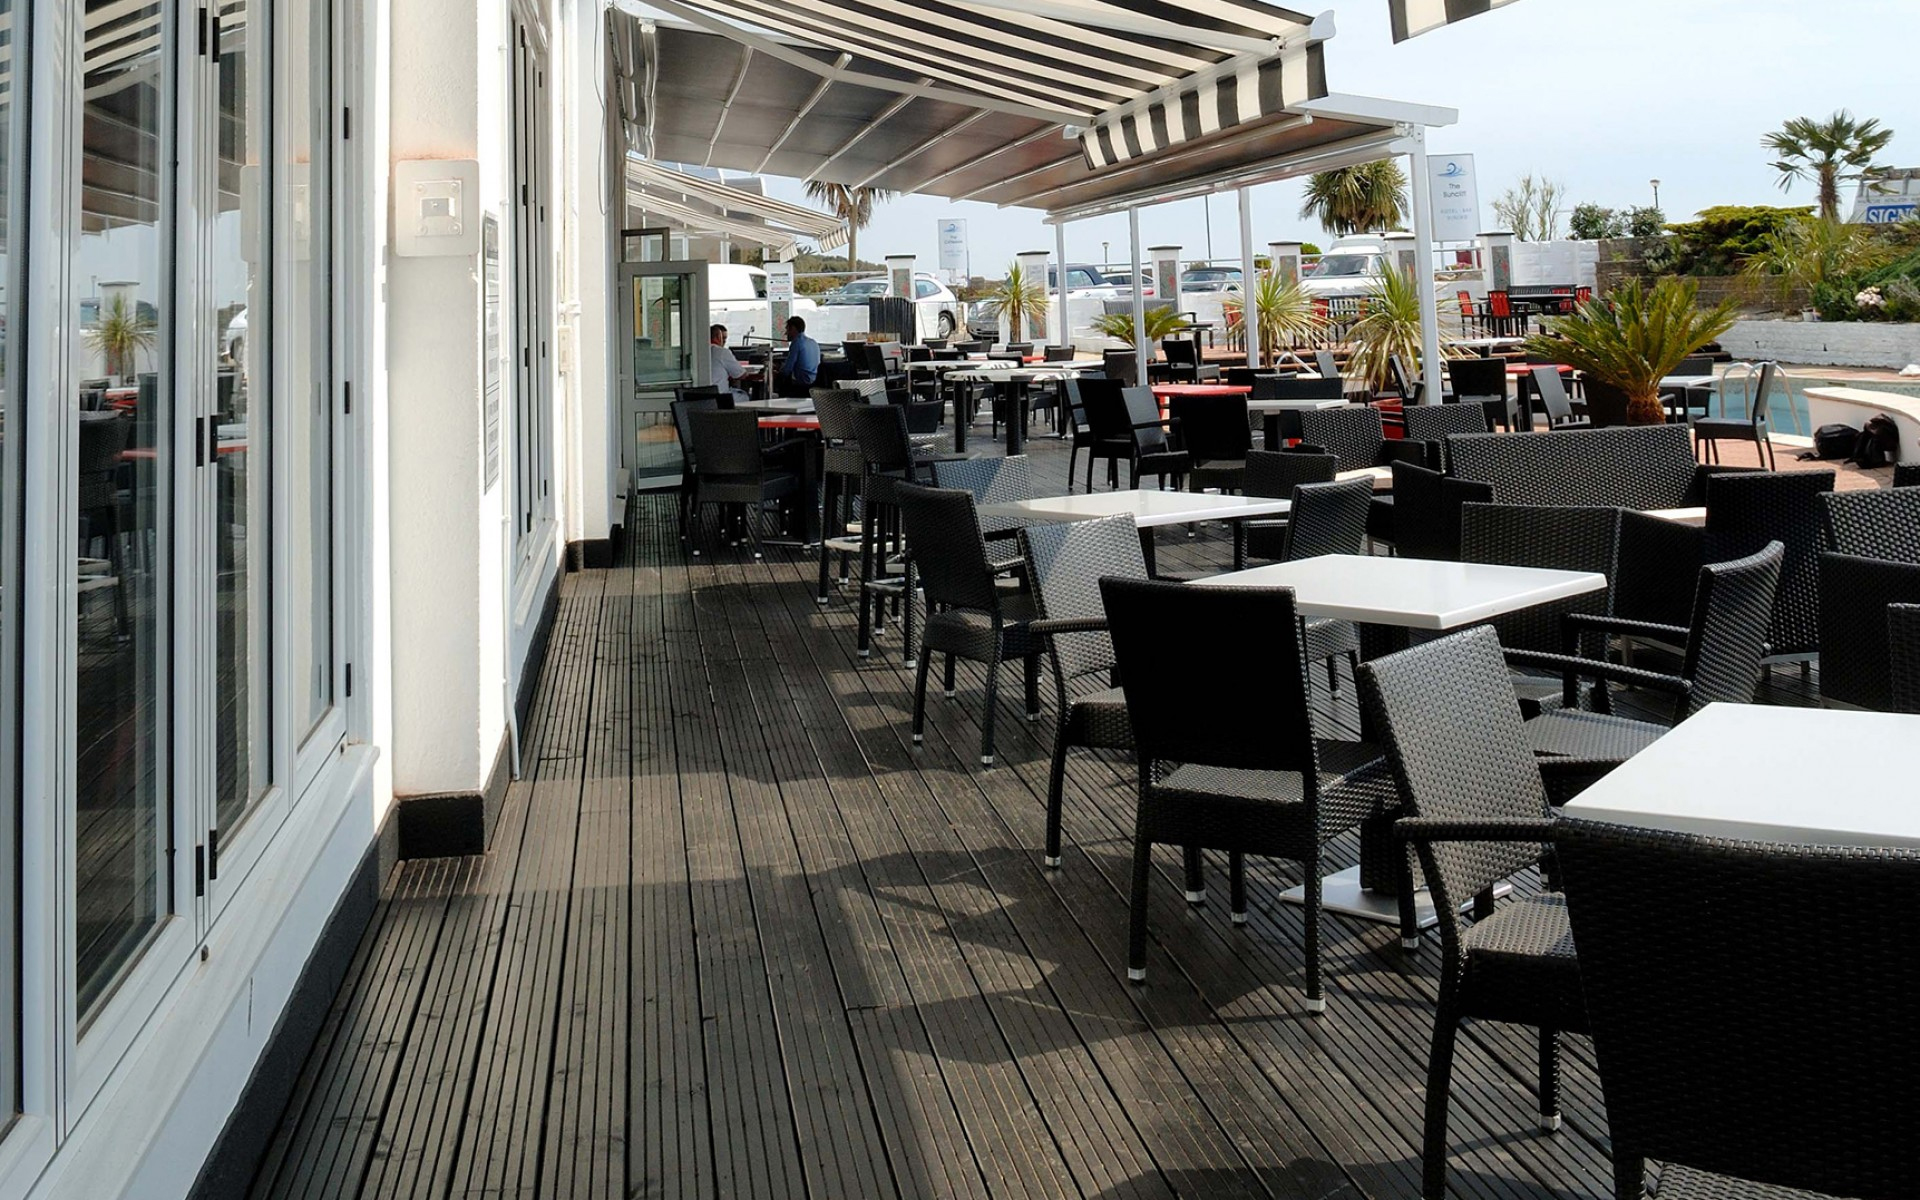 Commercial Awnings Supplier for Shops, Hotels & Restaurants